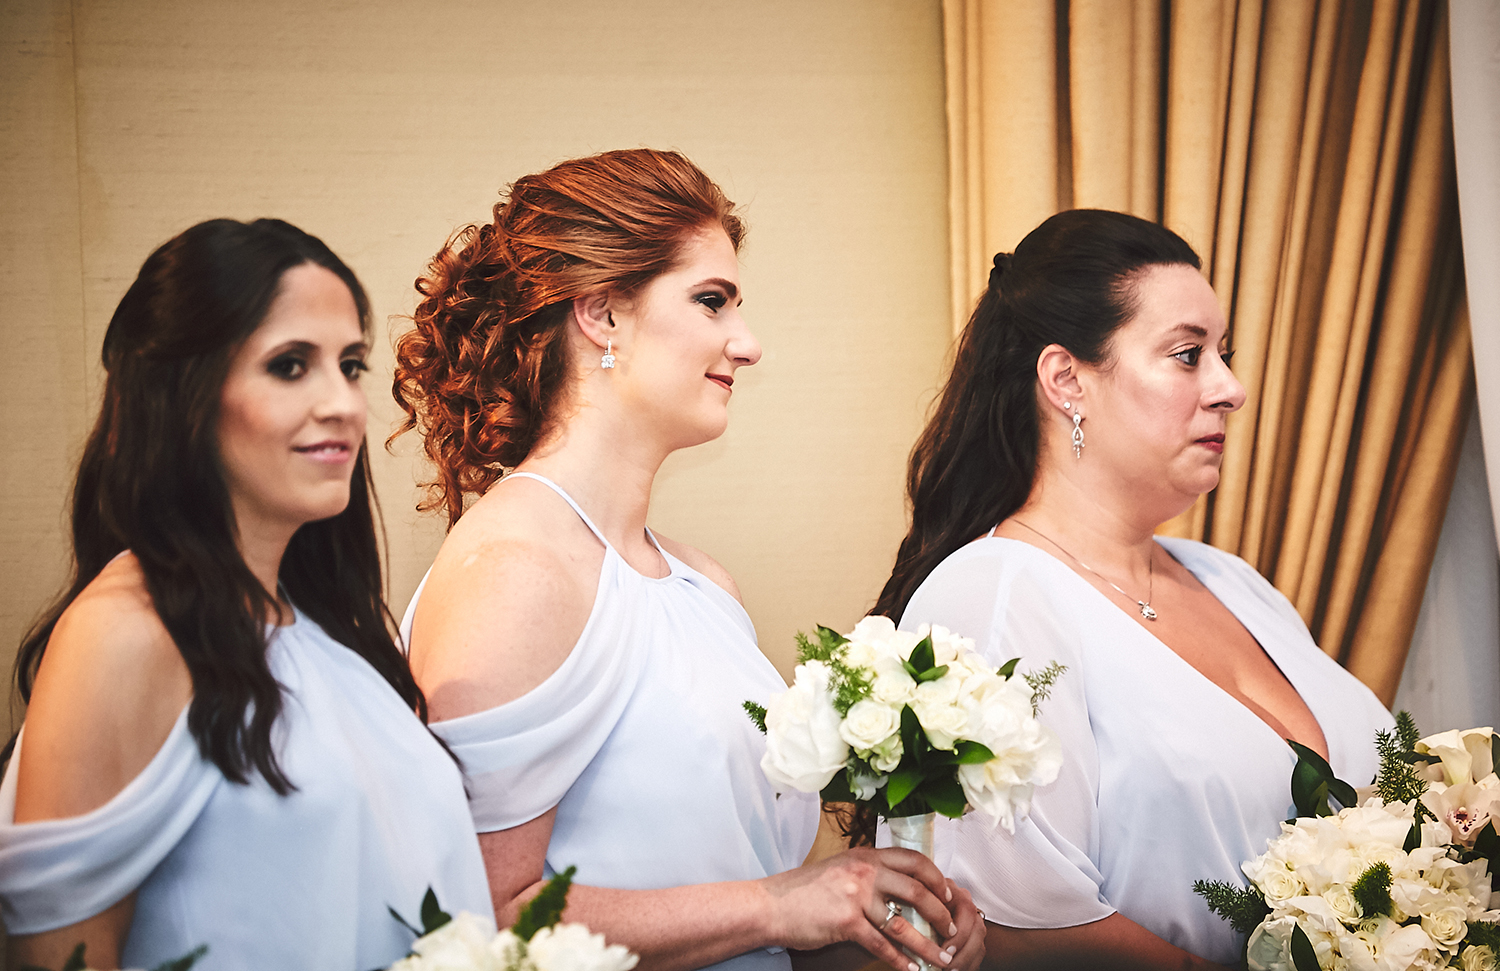 180519_PalaceatSomersetParkWeddingPhotography_NJWeddingPhotographer_By_BriJohnsonWeddings_0111.jpg